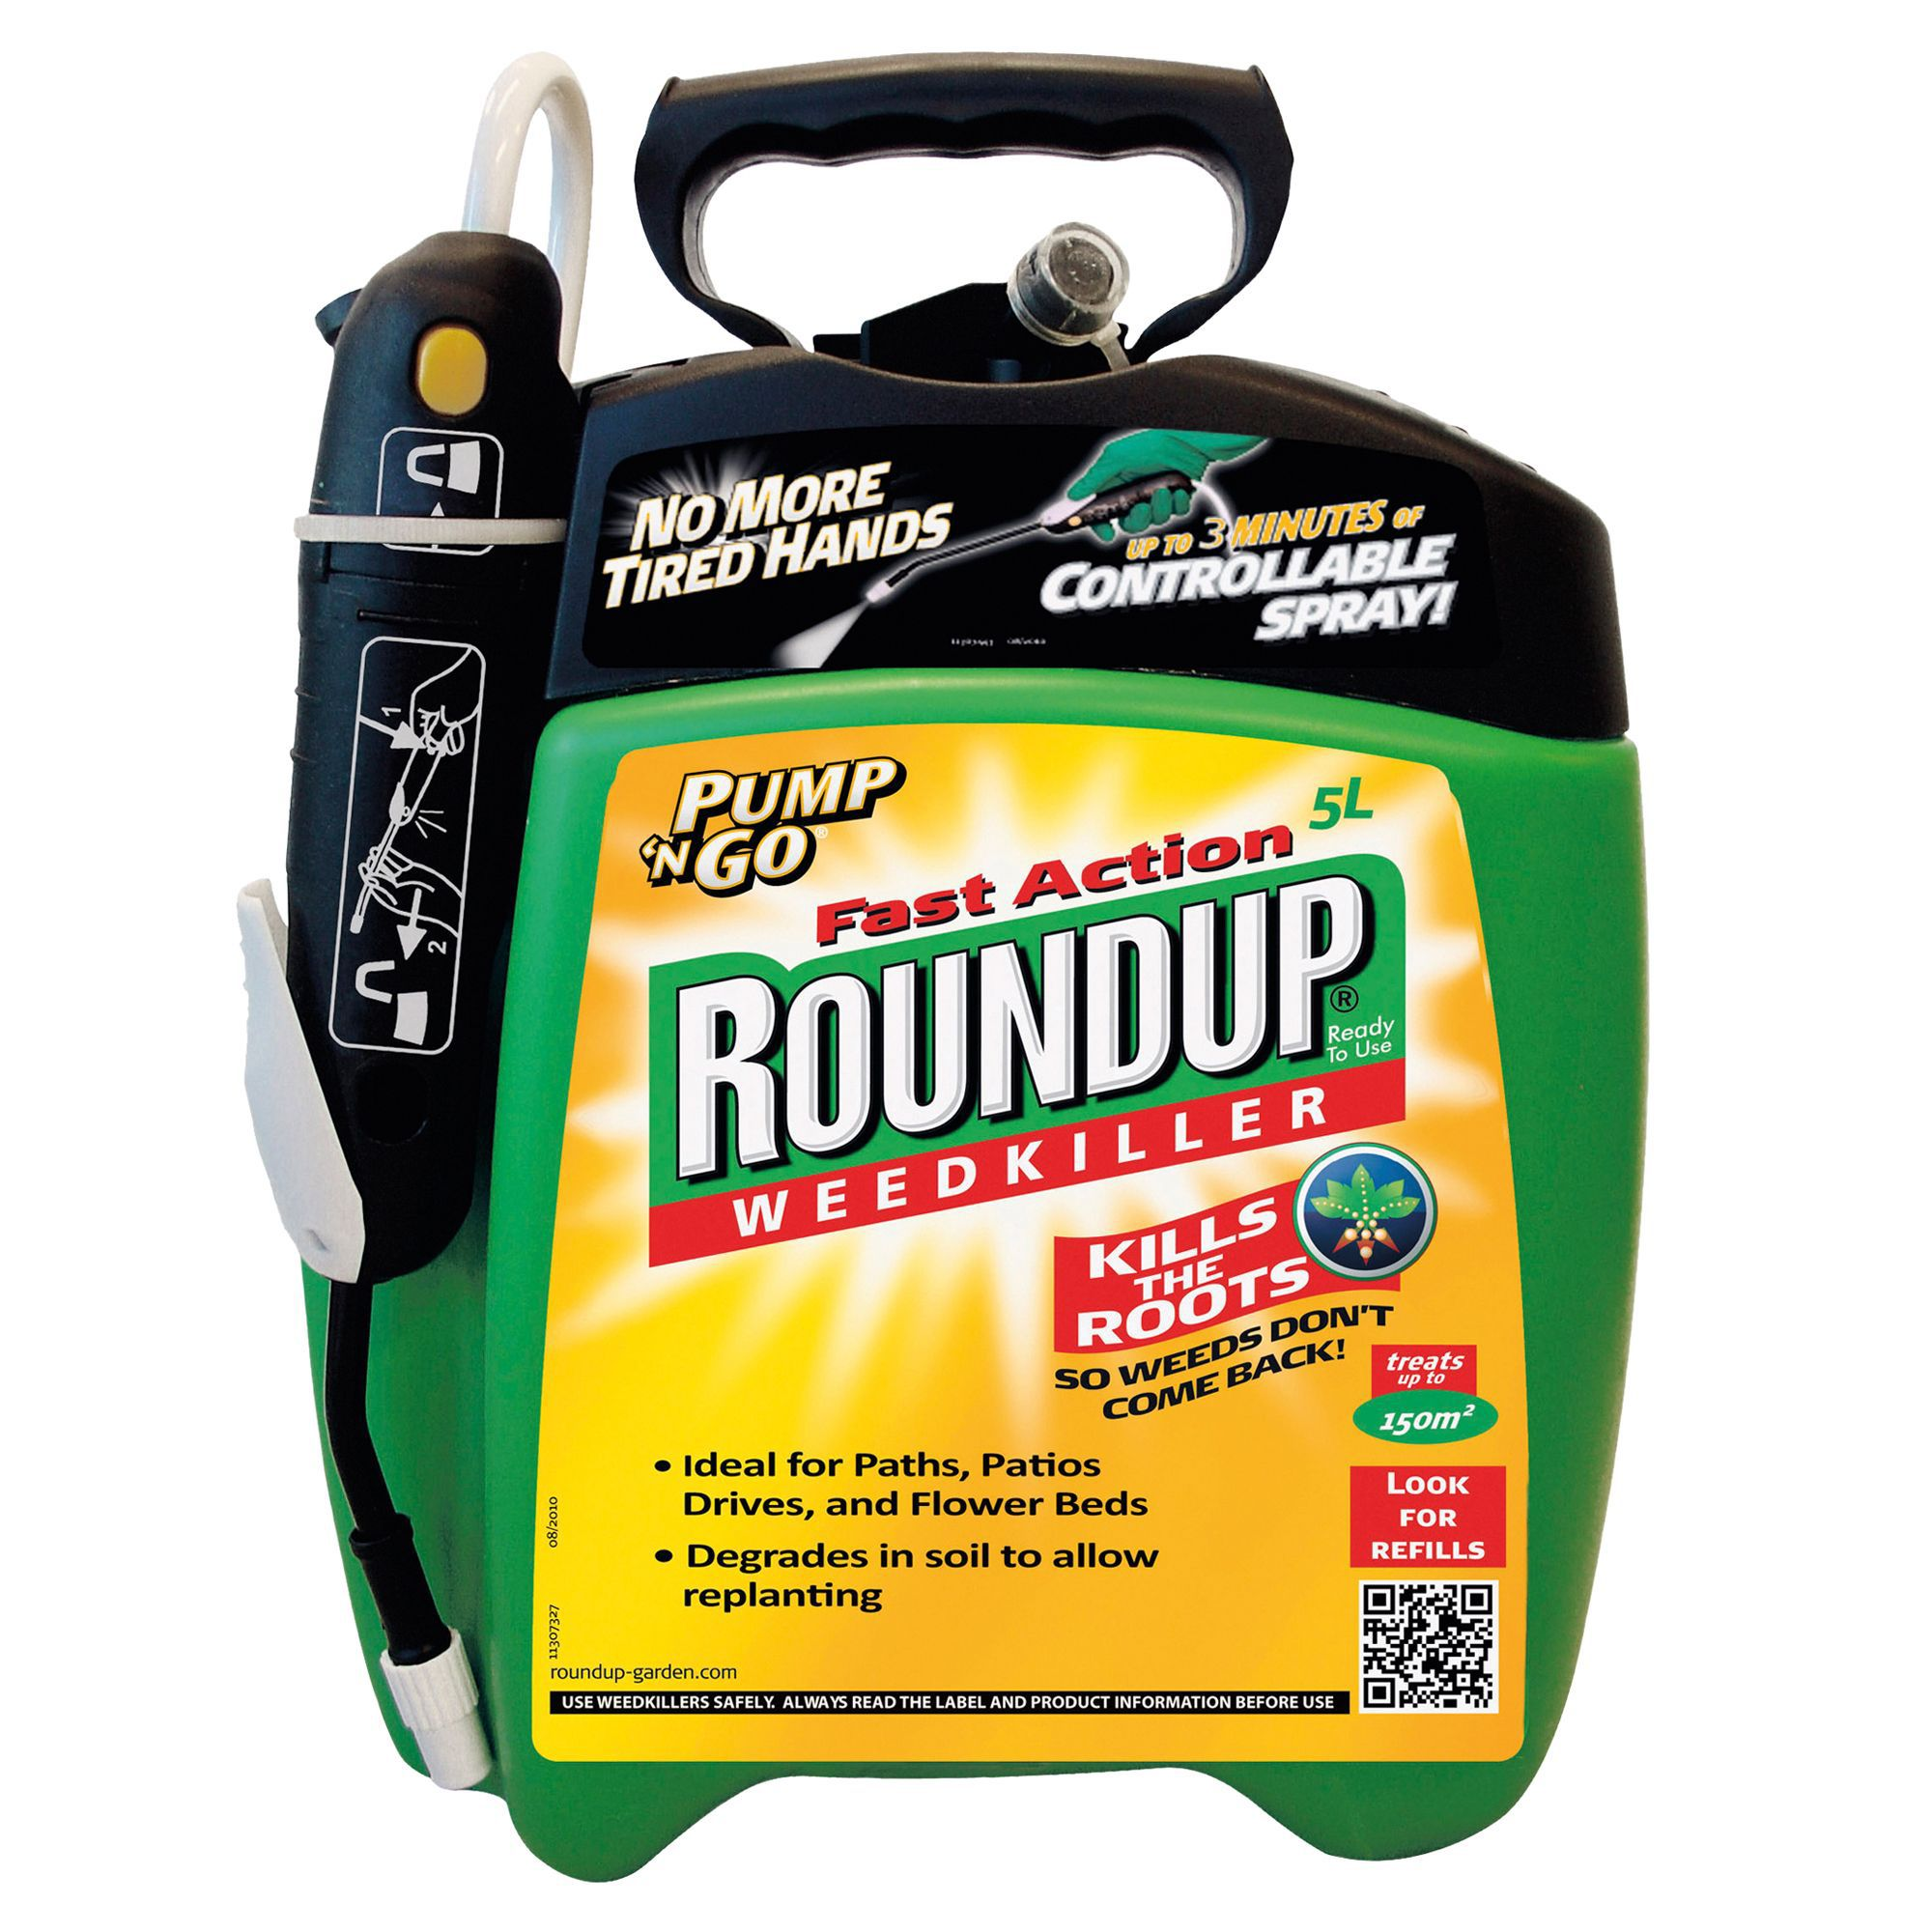 Roundup Fast Action Pump N Go Weed Killer 5l